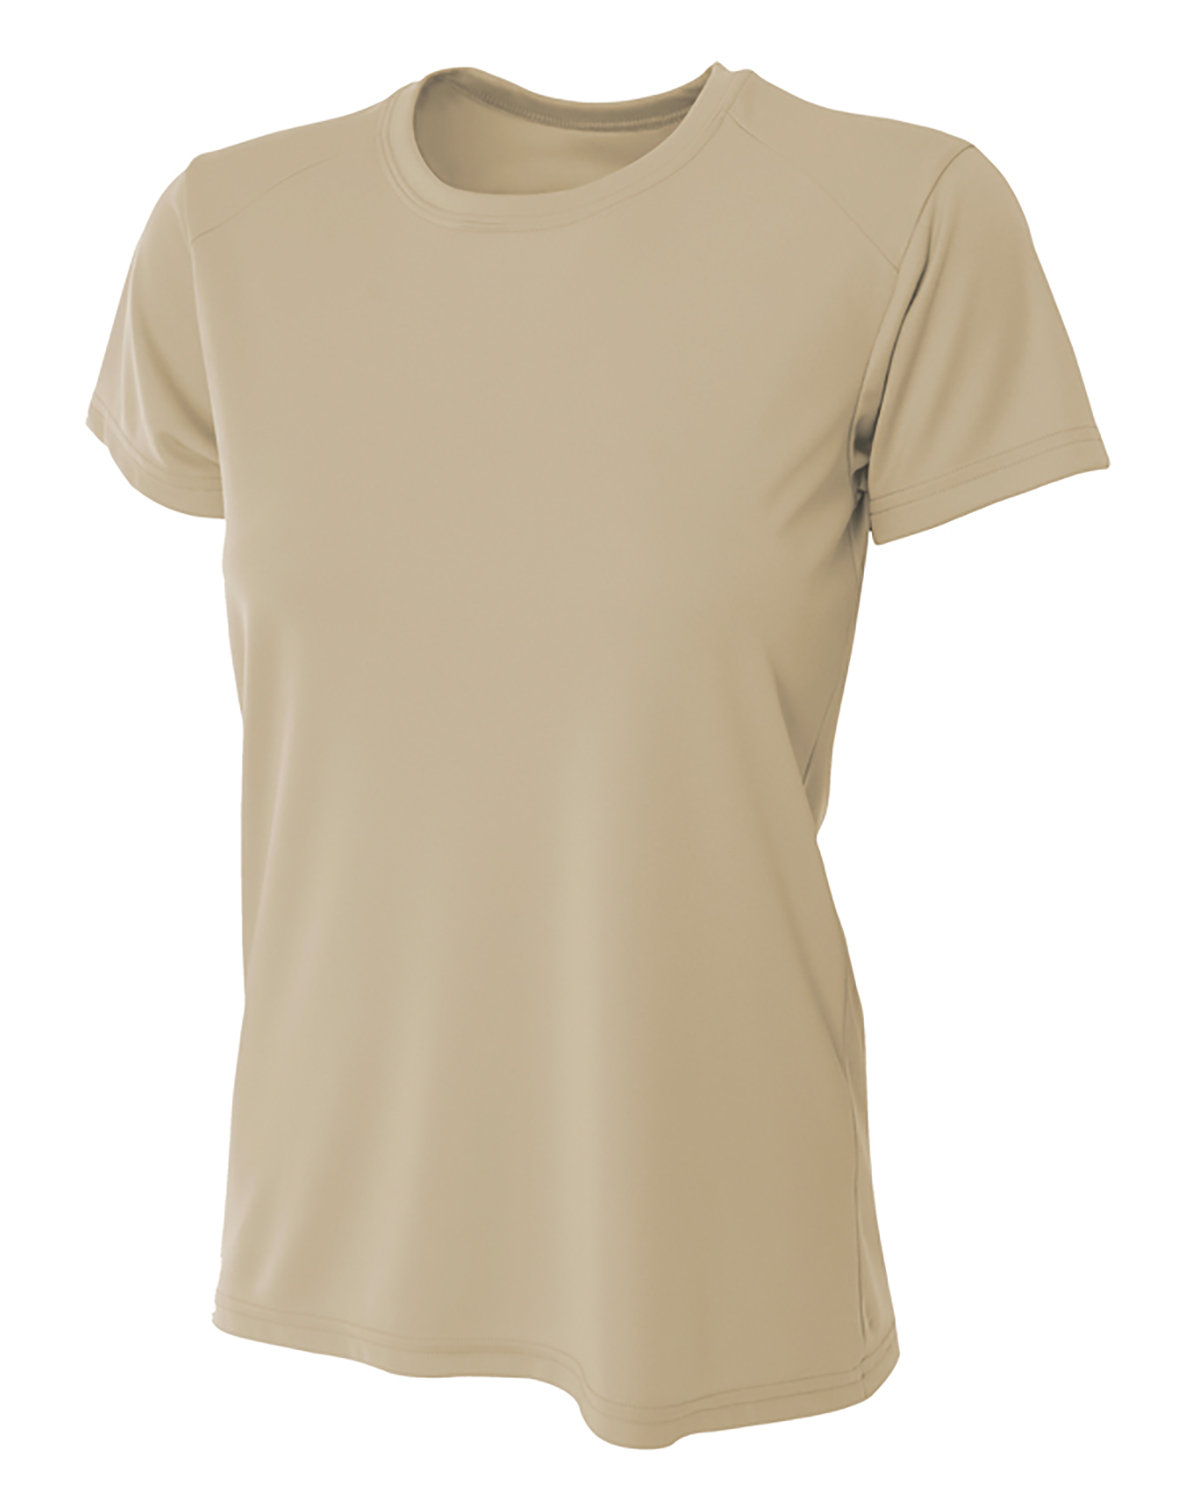 A4 Ladies' Cooling Performance T-Shirt SAND